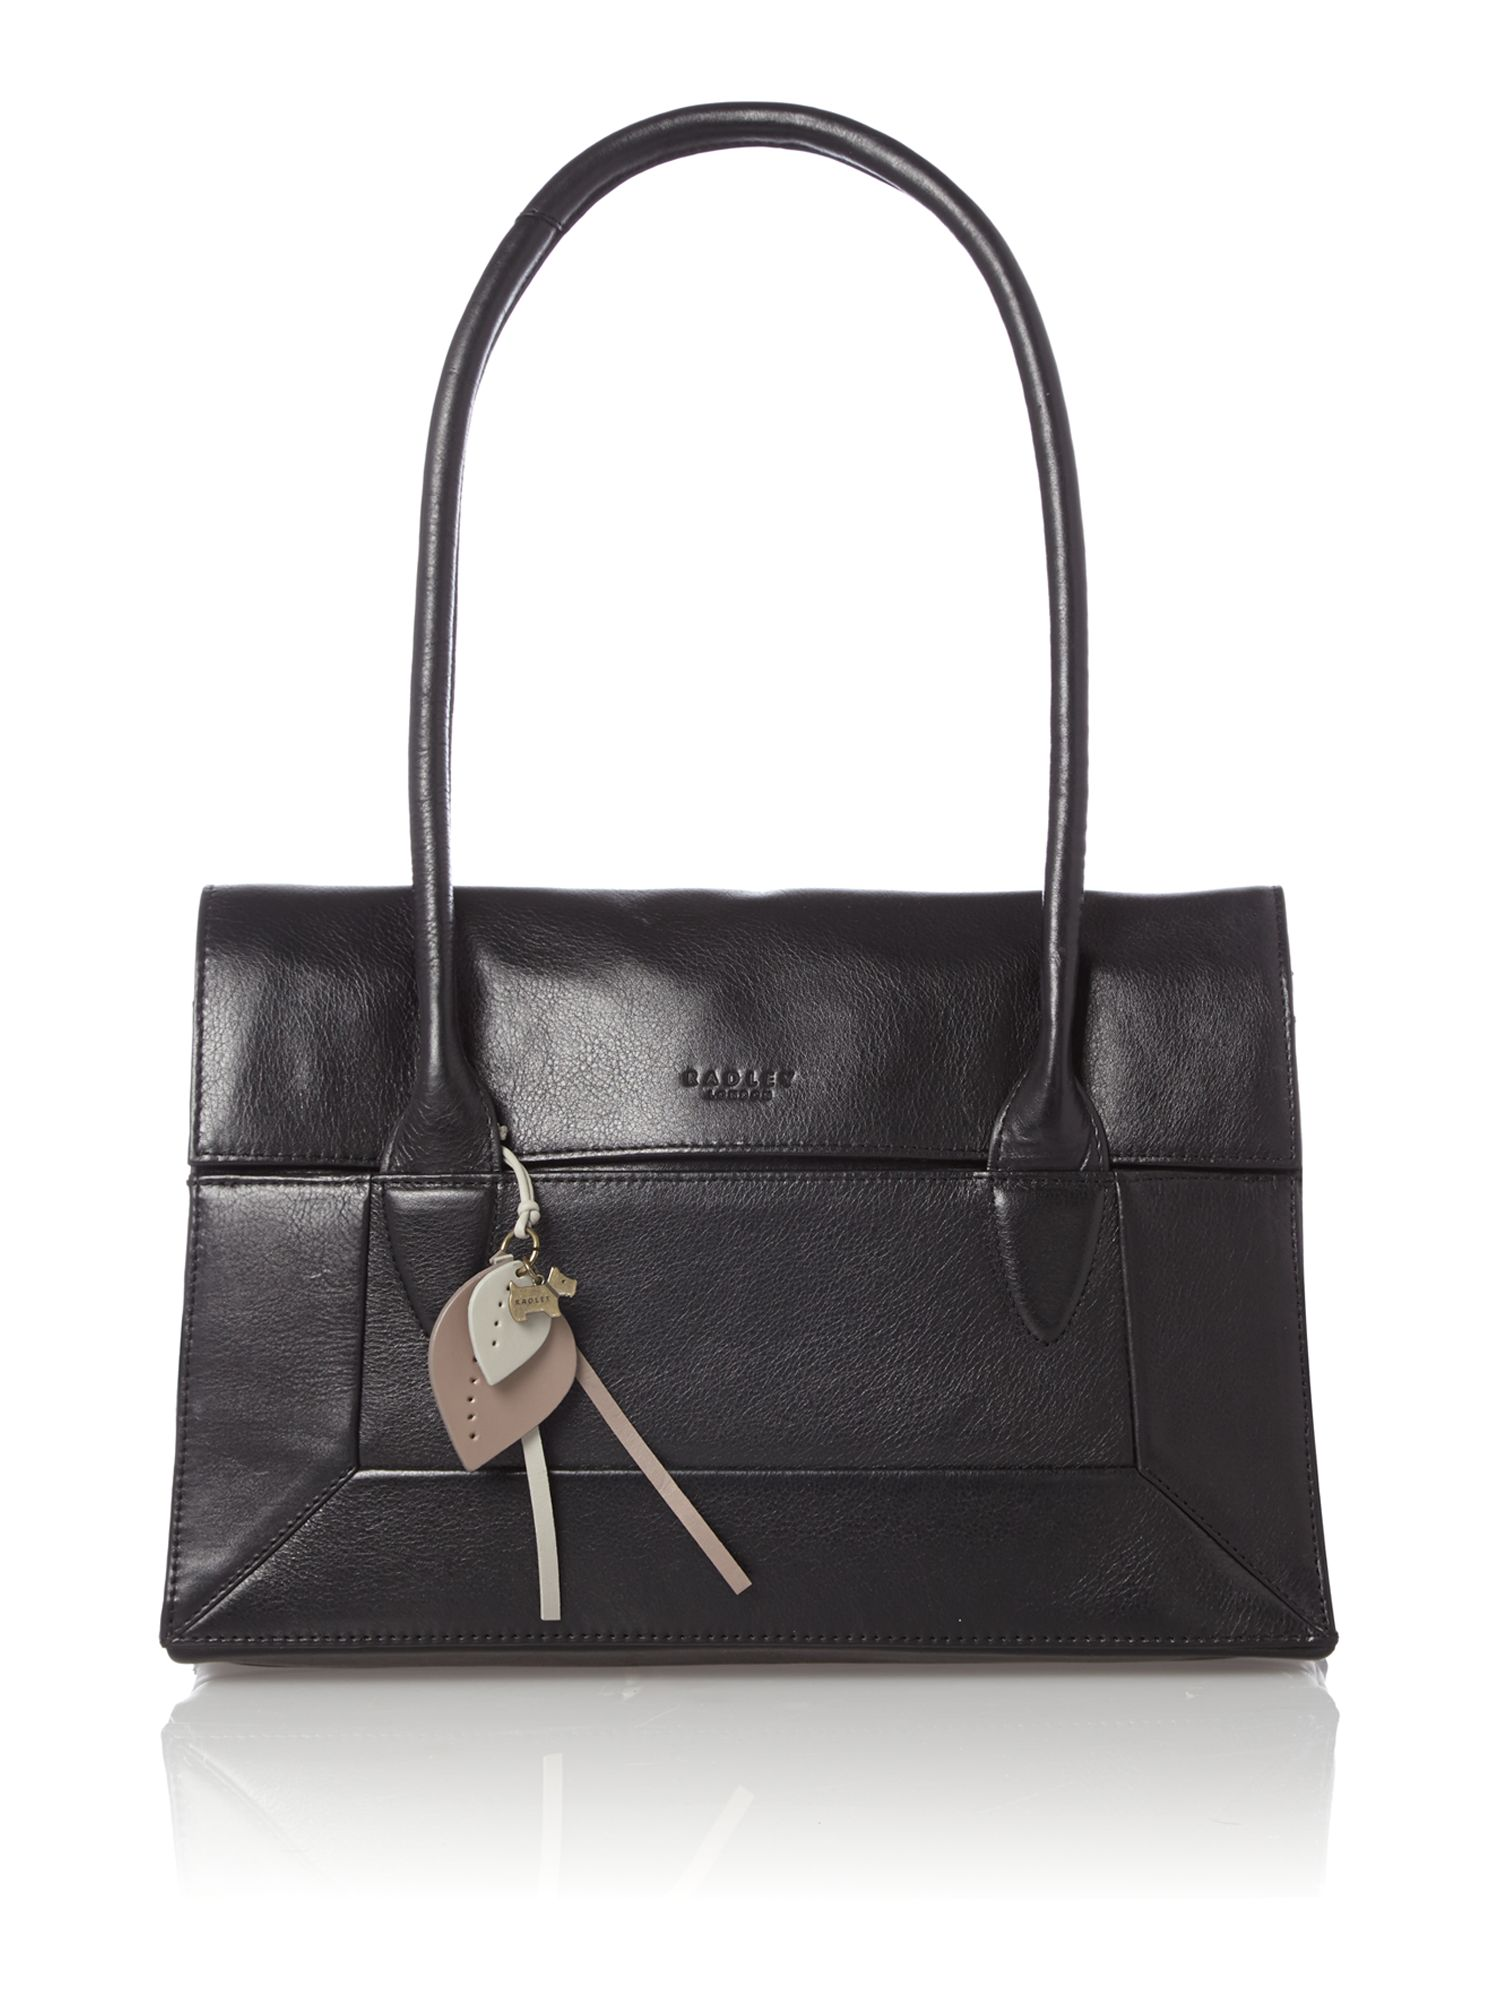 Border black leather medium flapover tote bag